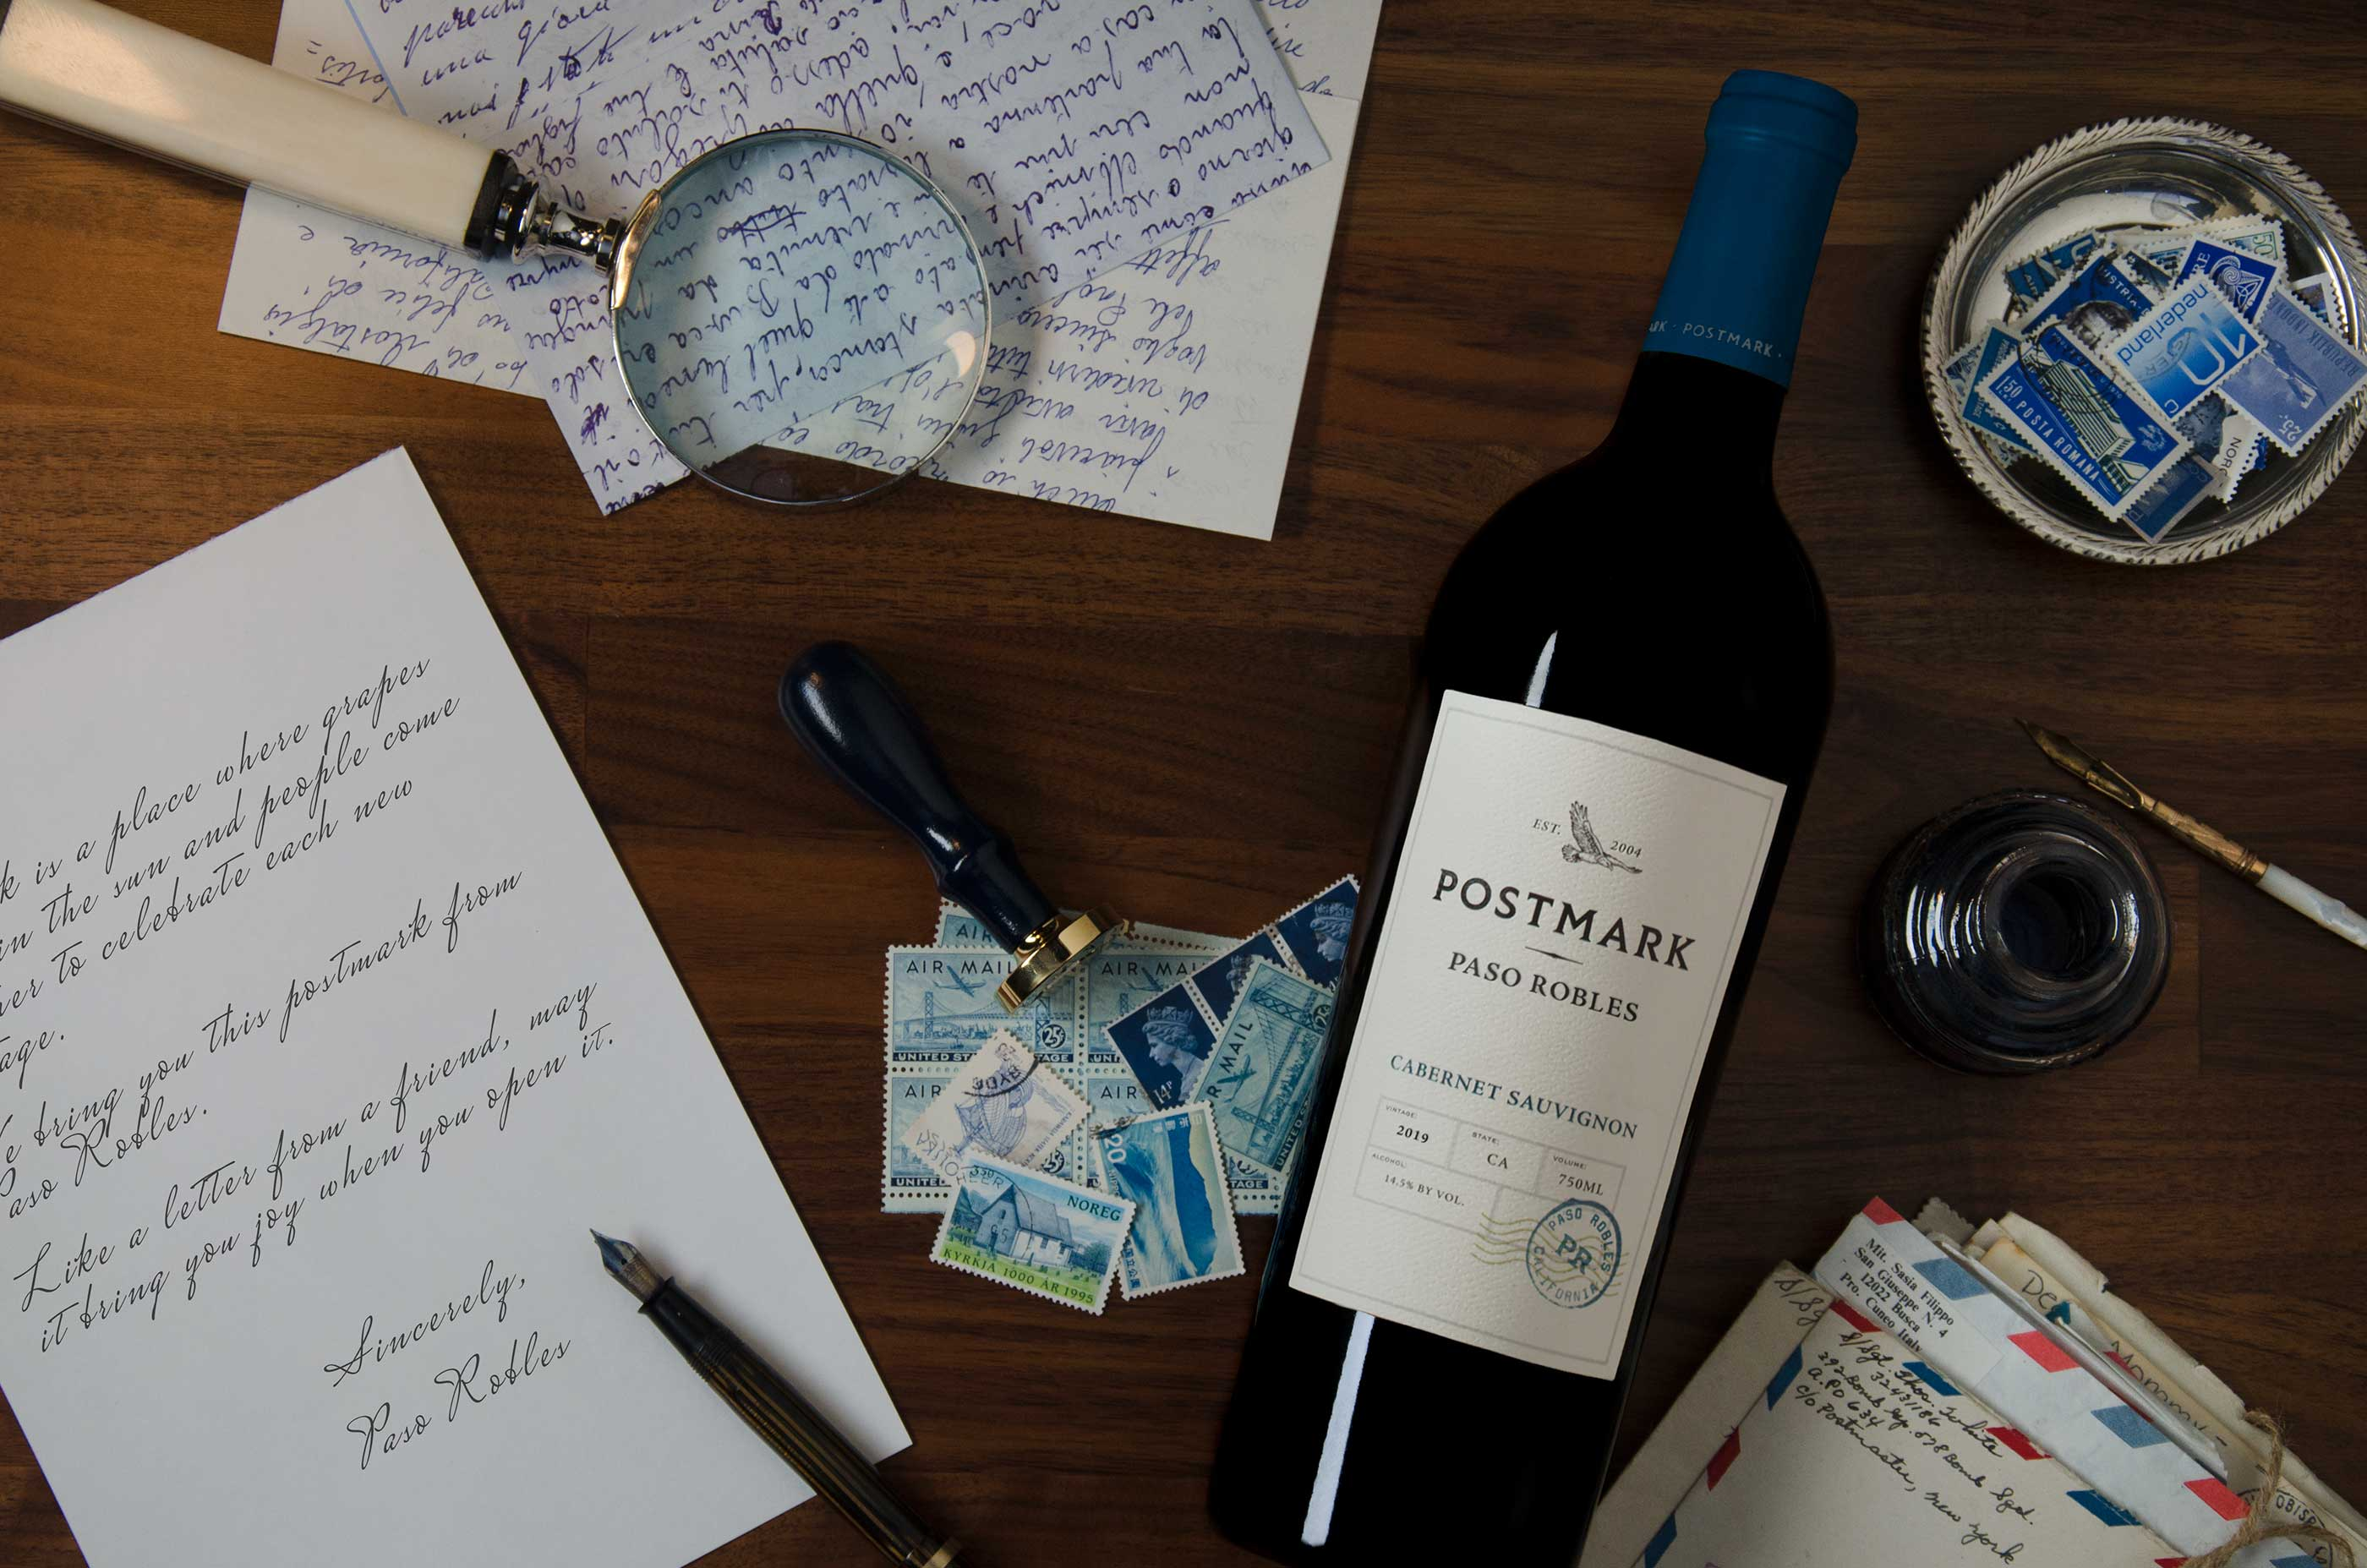 The Official Postmark Wines, Extraordinary Cabernet Sauvignon